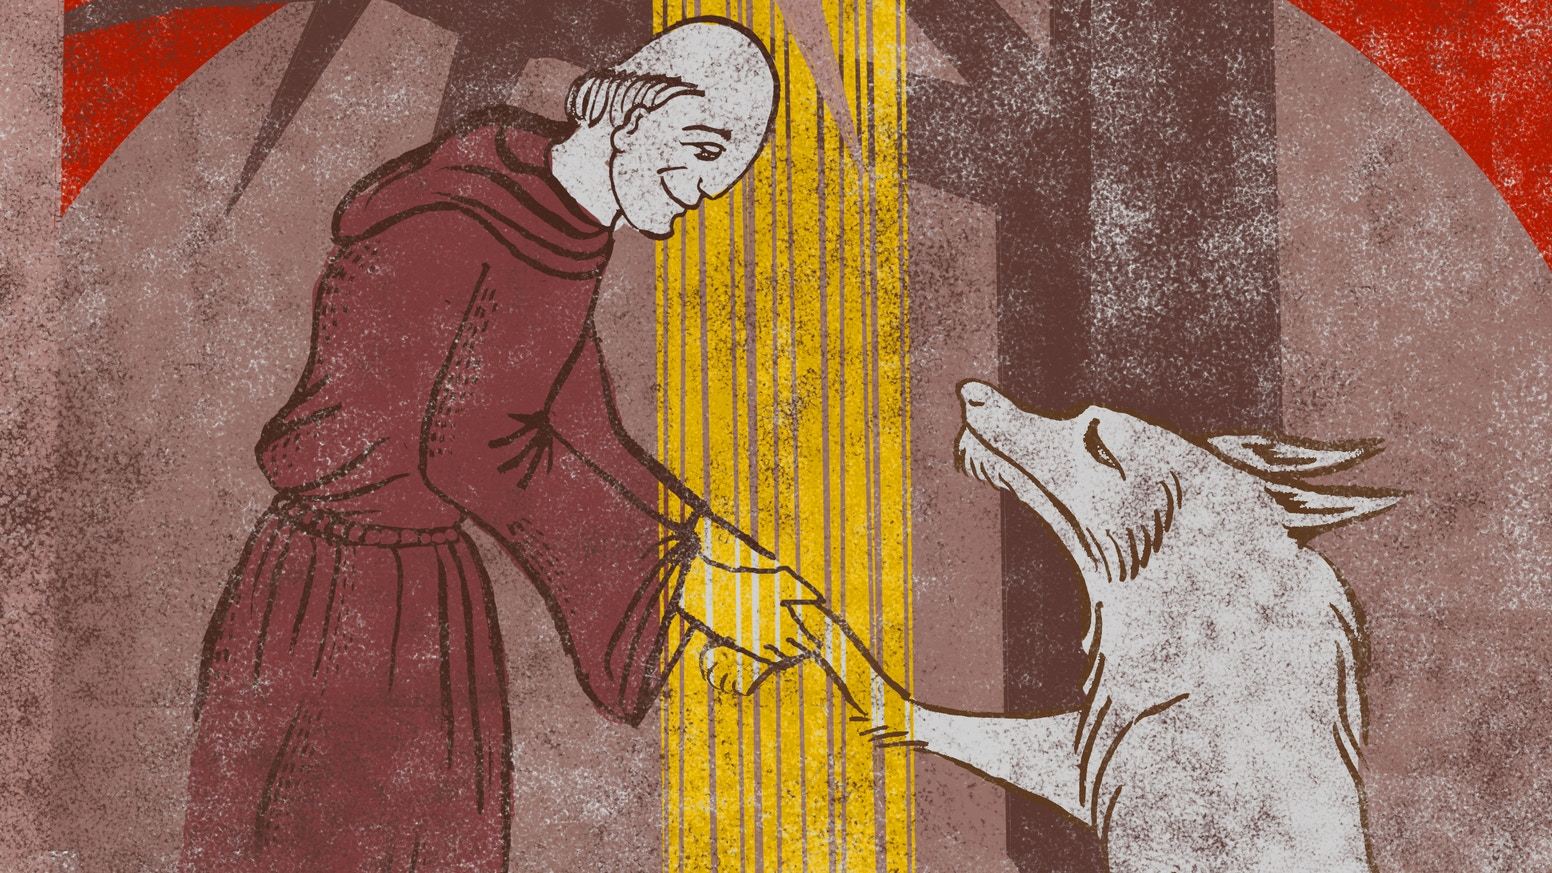 An imaginative retelling of the legend of St. Francis and the wolf, in which peace overcomes violence.